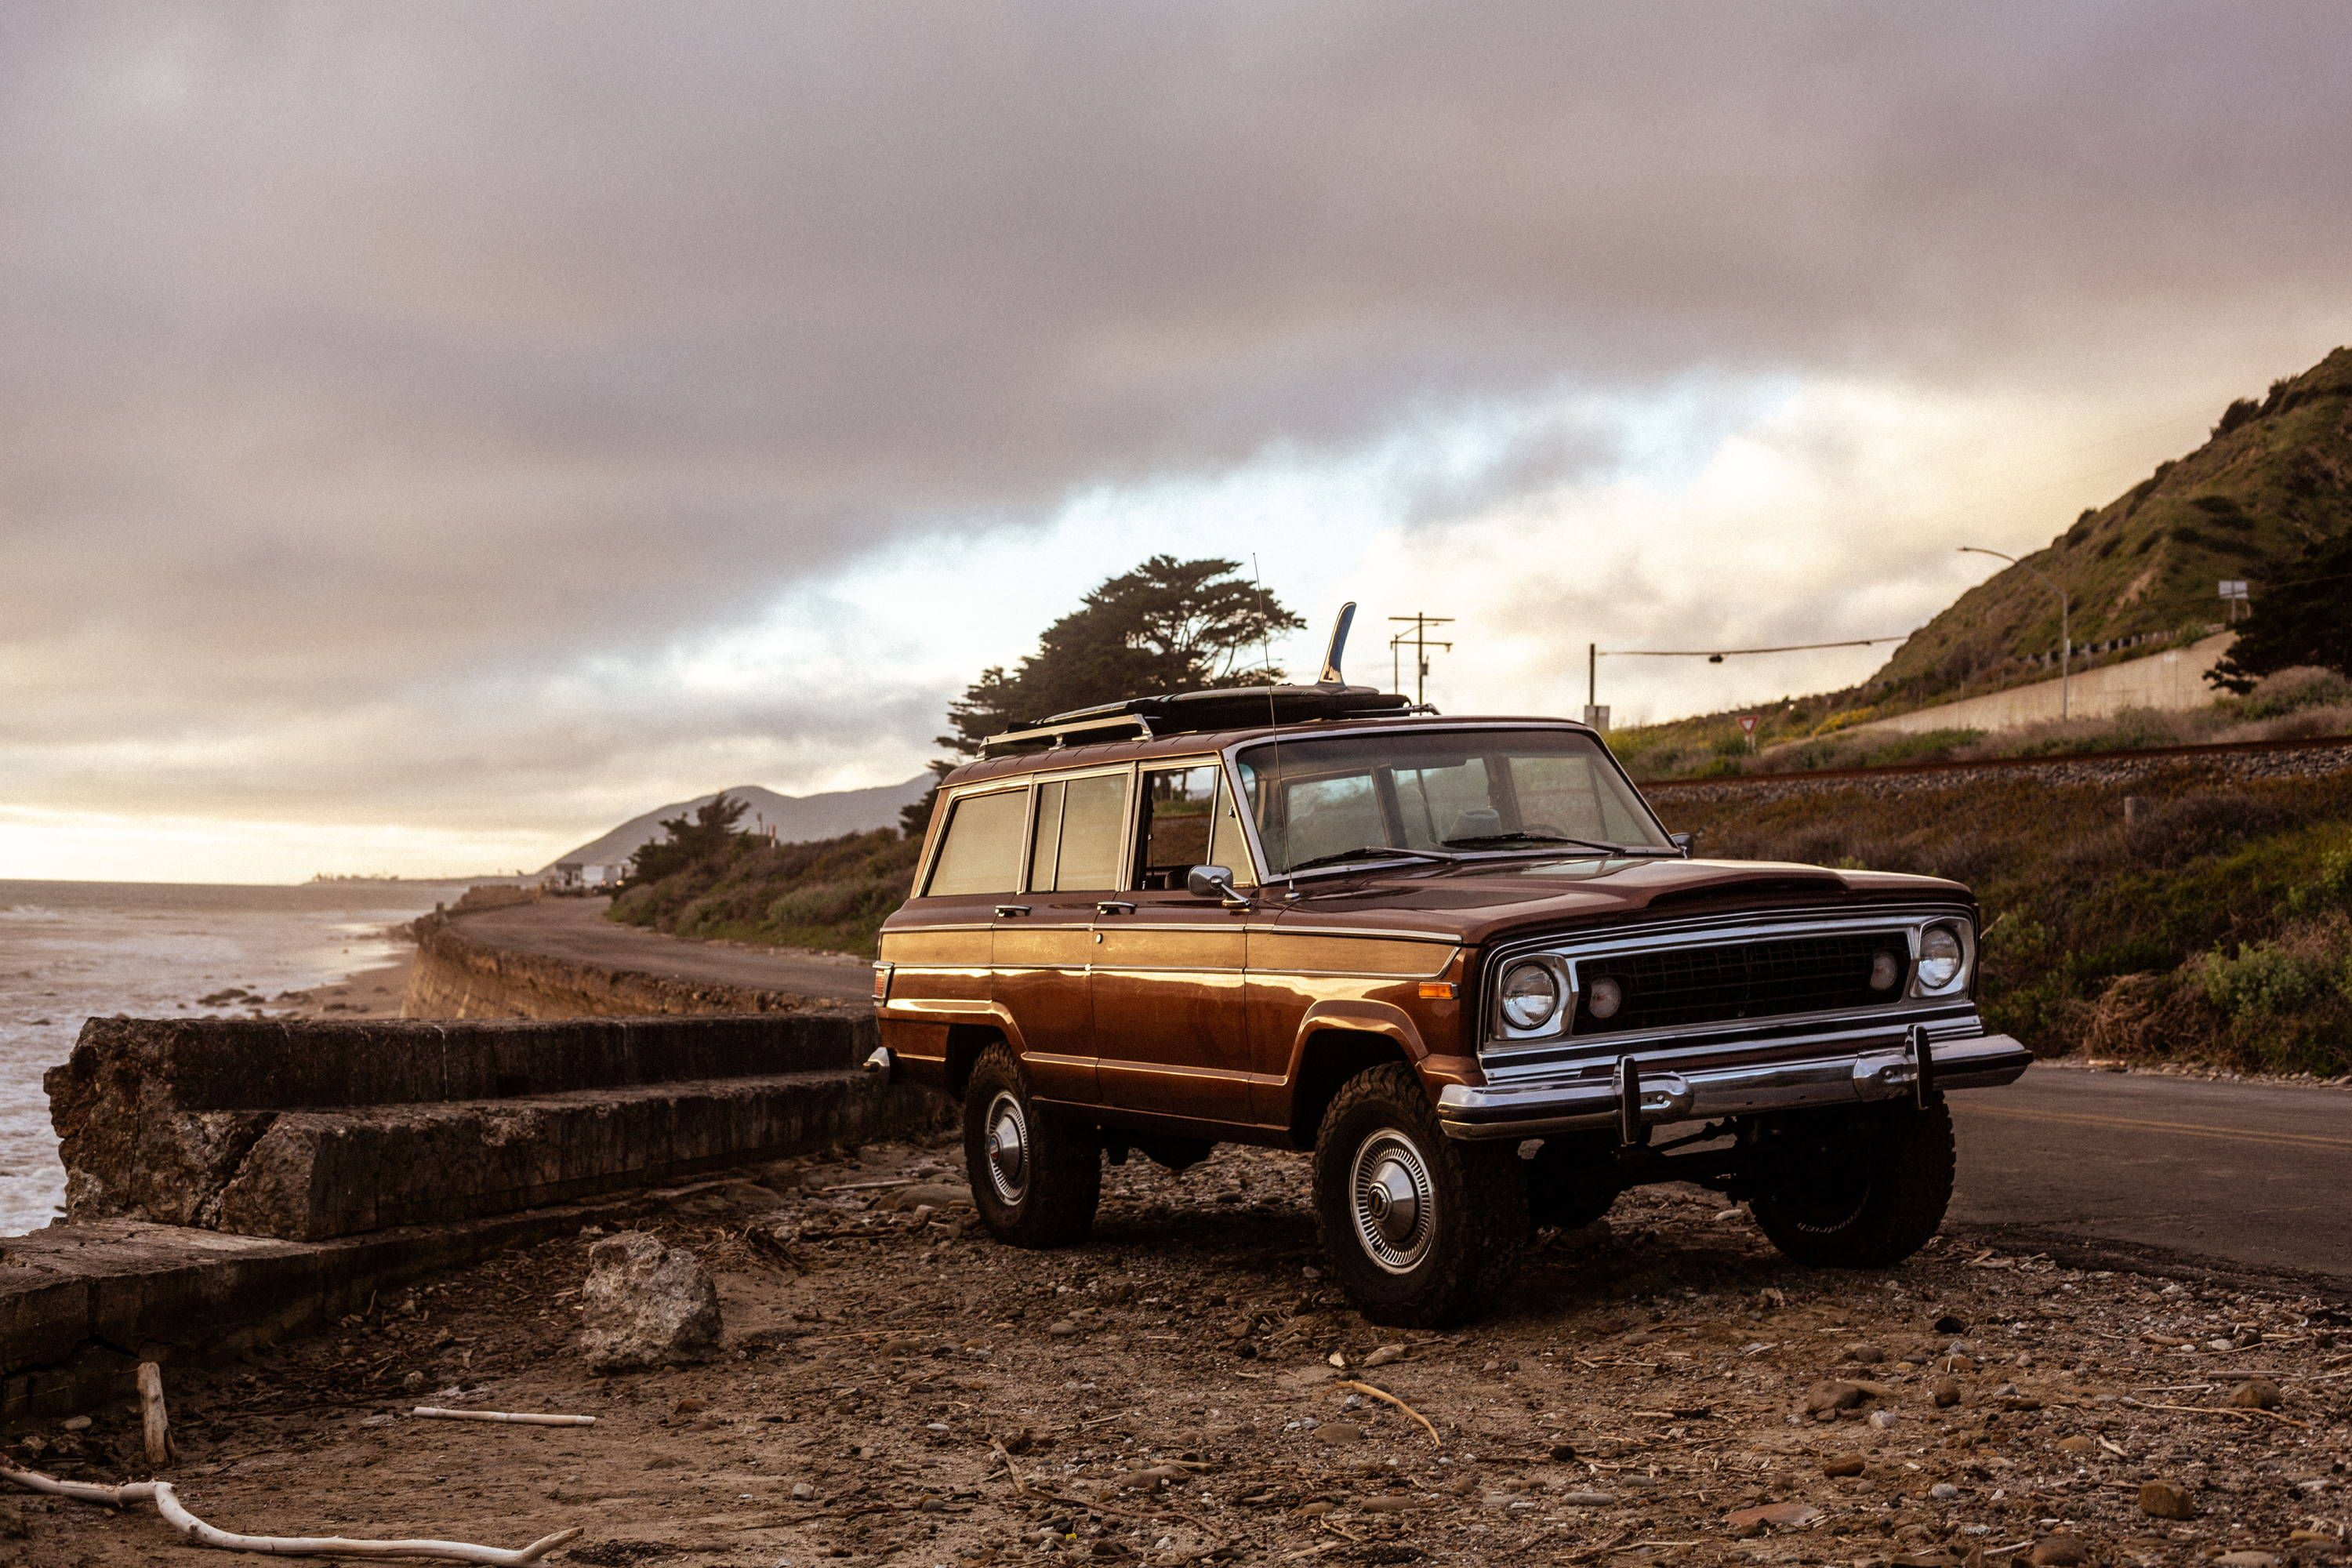 Iron And Resin In 2020 Jeep Wagoneer Jeep Built Jeep